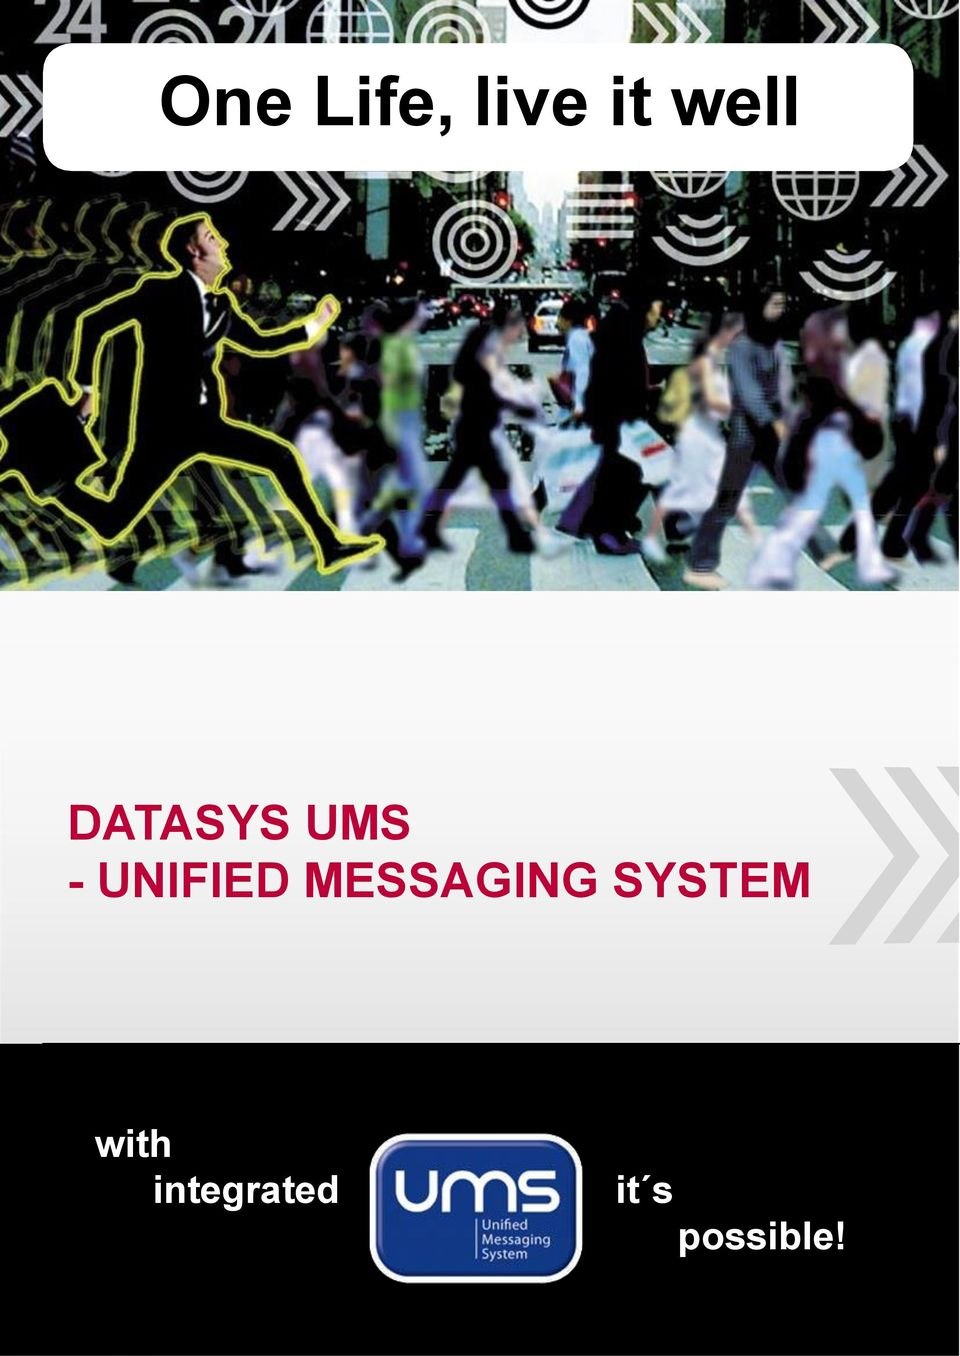 MESSAGING SYSTEM with